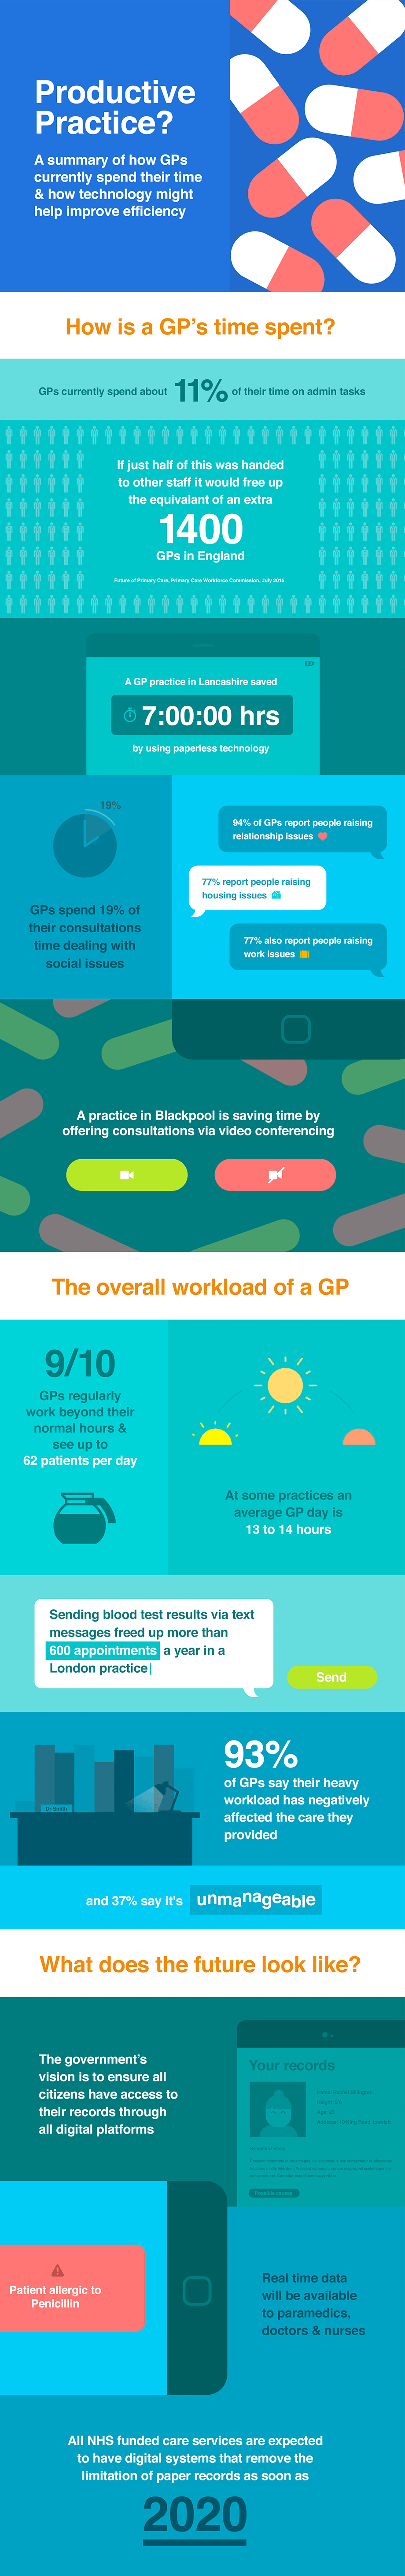 GP Workload Efficiency infographic from Brother UK | Healthcare